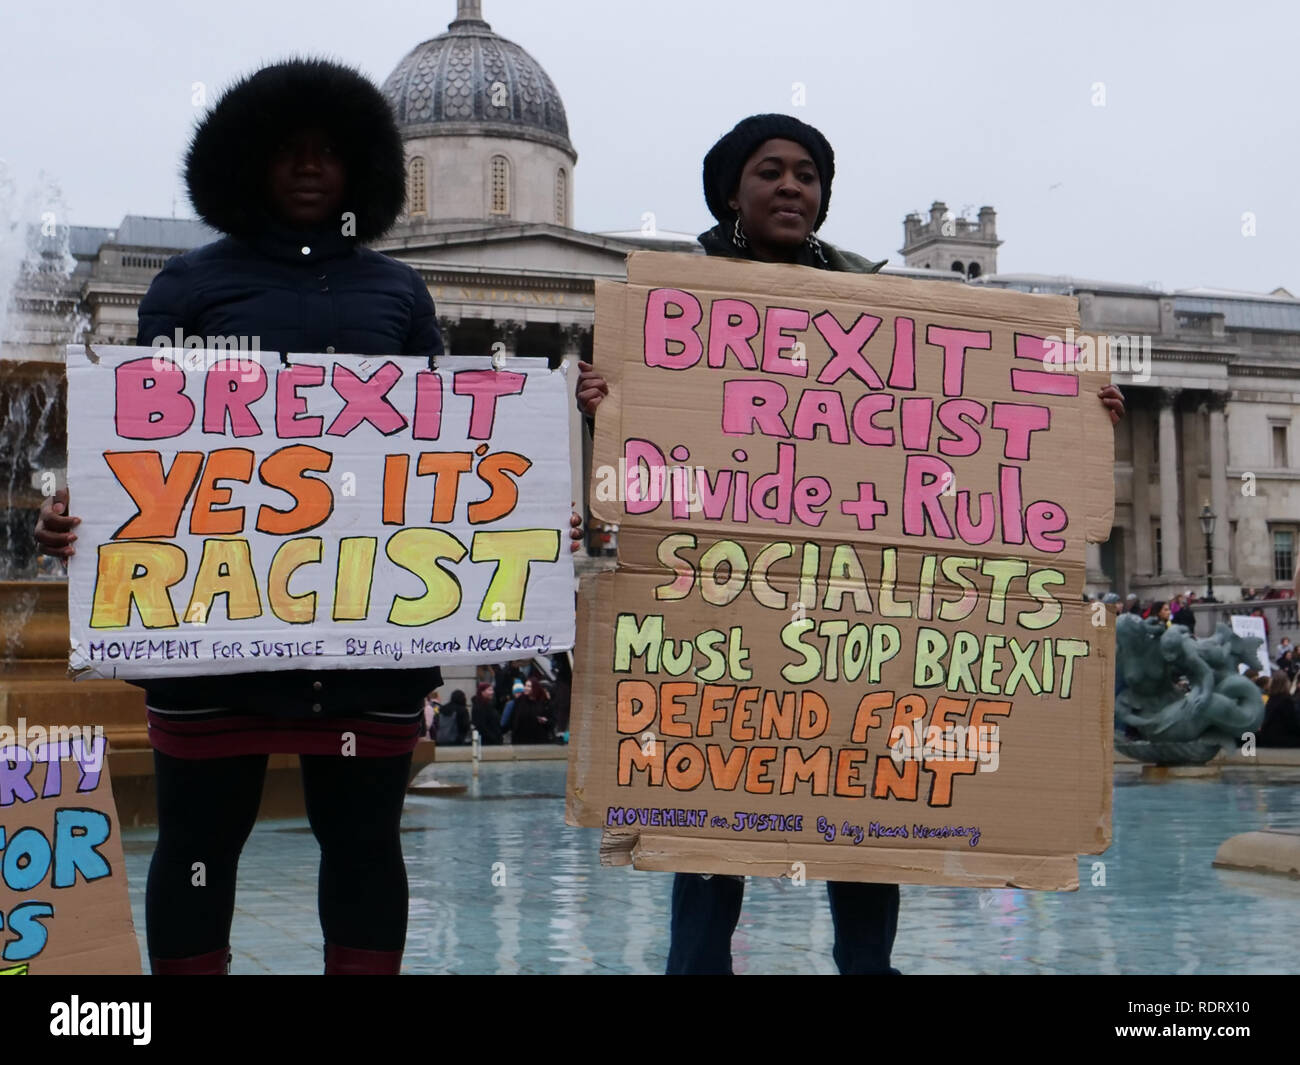 London, UK. 19th January 2019. Worldwide women's marches today, including in London against violence and austerity. The rally in London has been named 'Bread and Roses' in honour of the American feminist Rose Schneiderman, directing attention to the impact of austerity on women. Credit: Joe Kuis /Alamy Live News - Stock Image